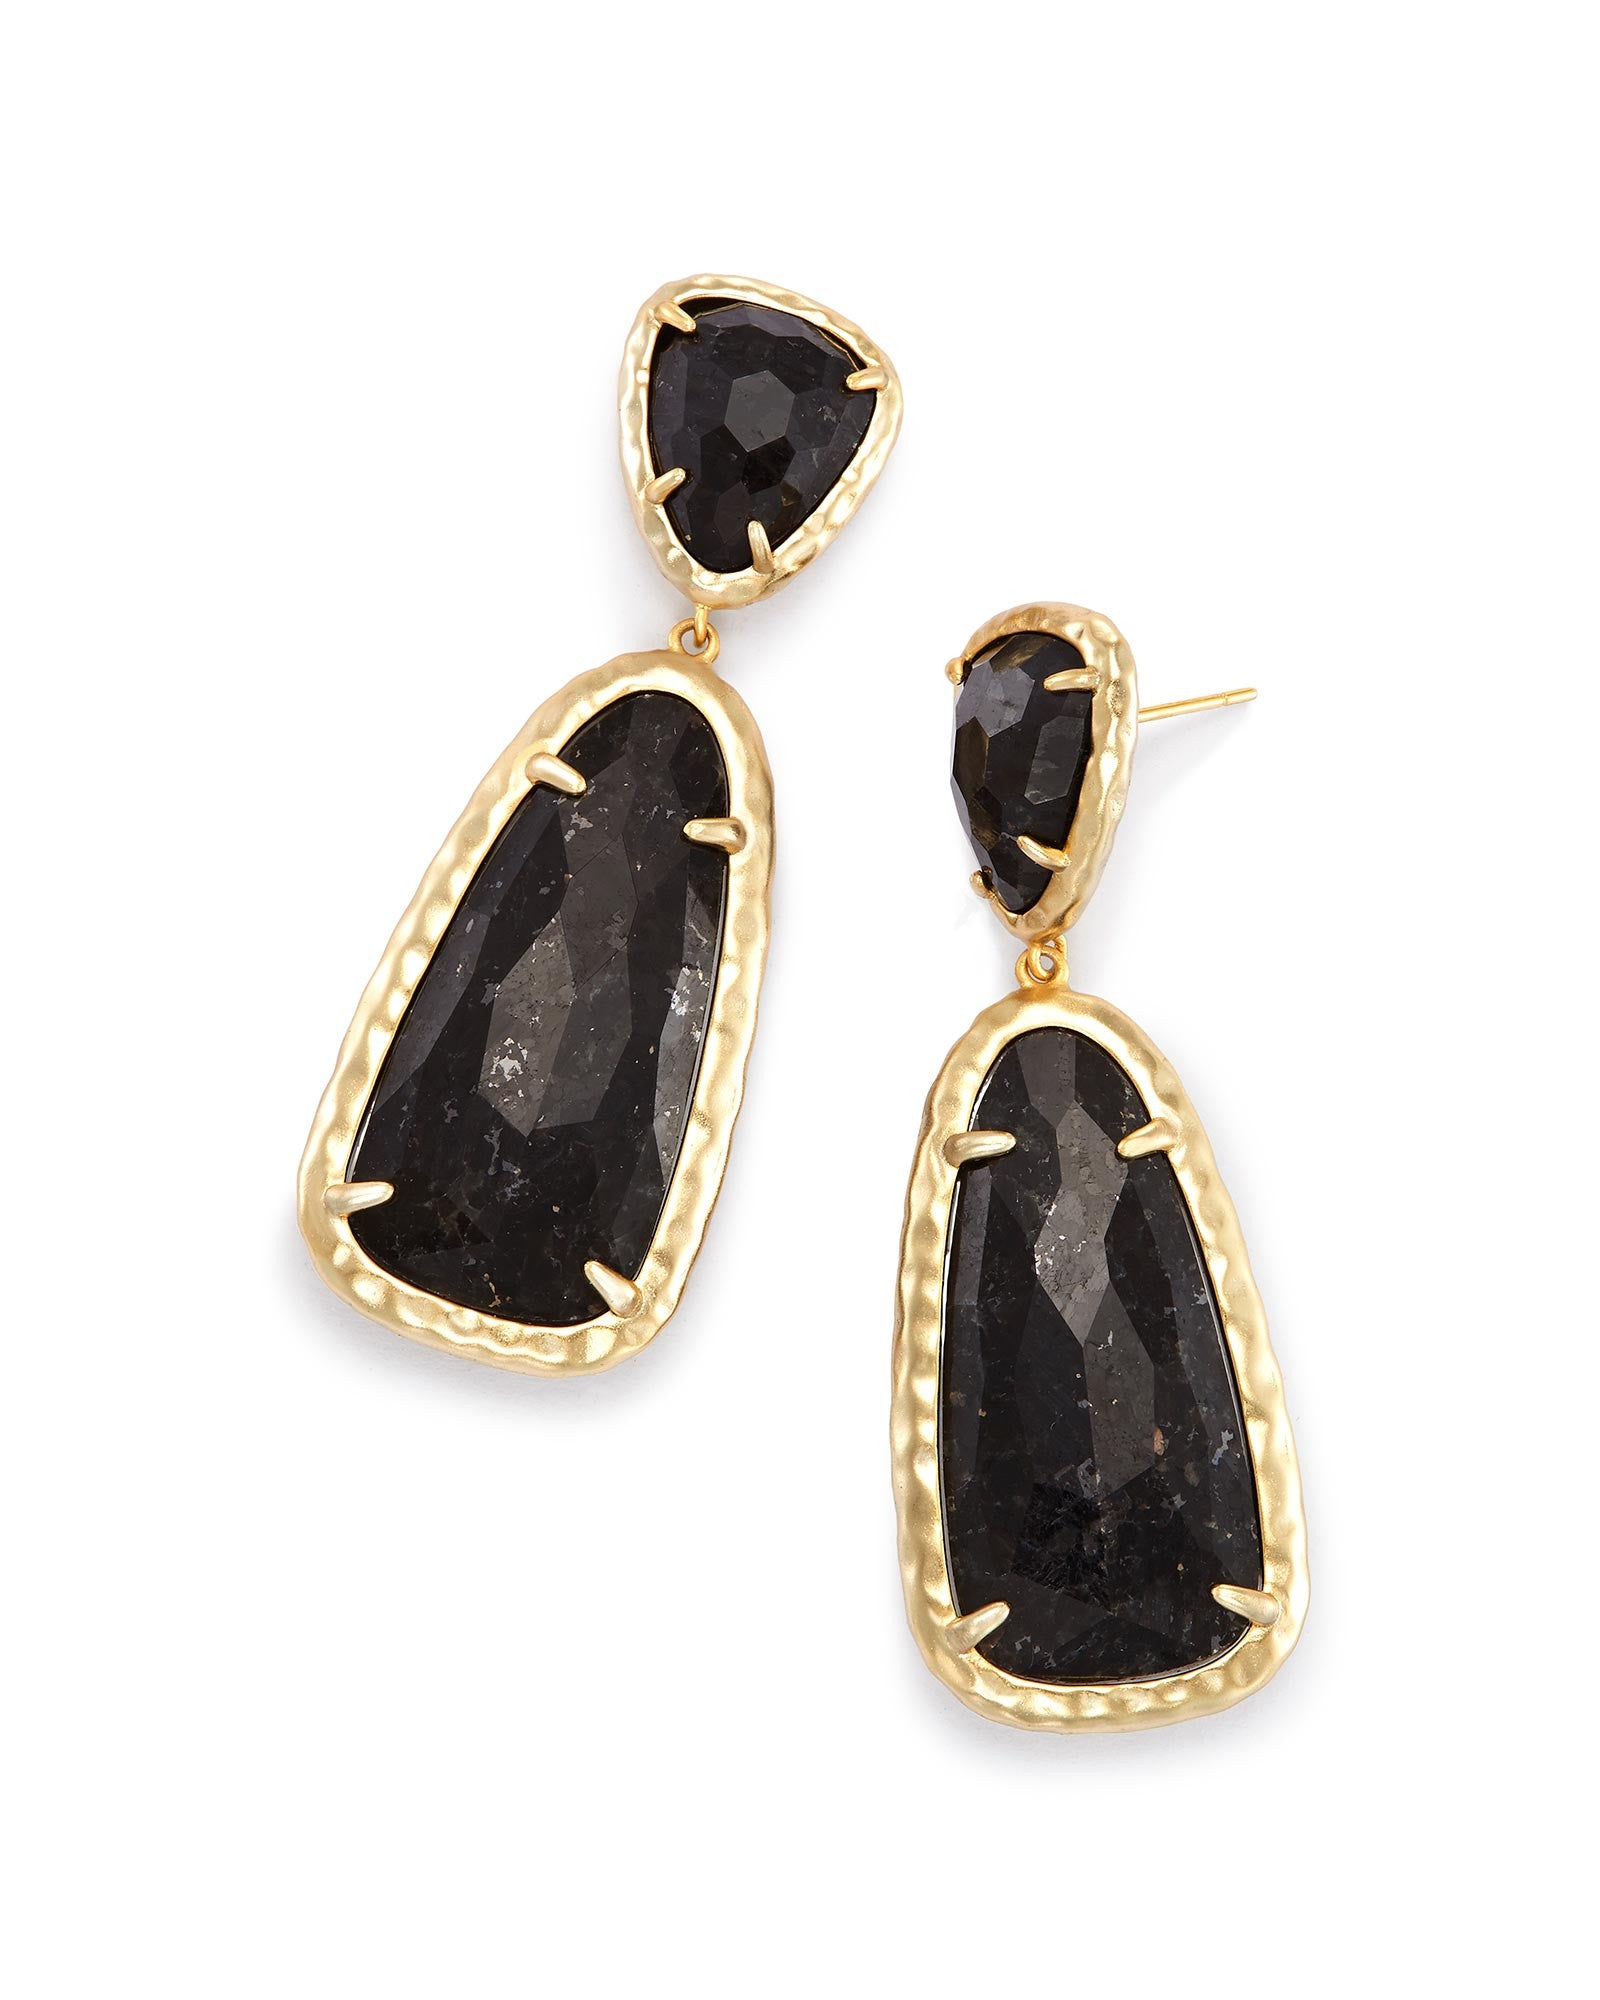 Made with Swarovski Crystal 18K Gold Filled Black Stone Drop Earrings - CharmToSpare